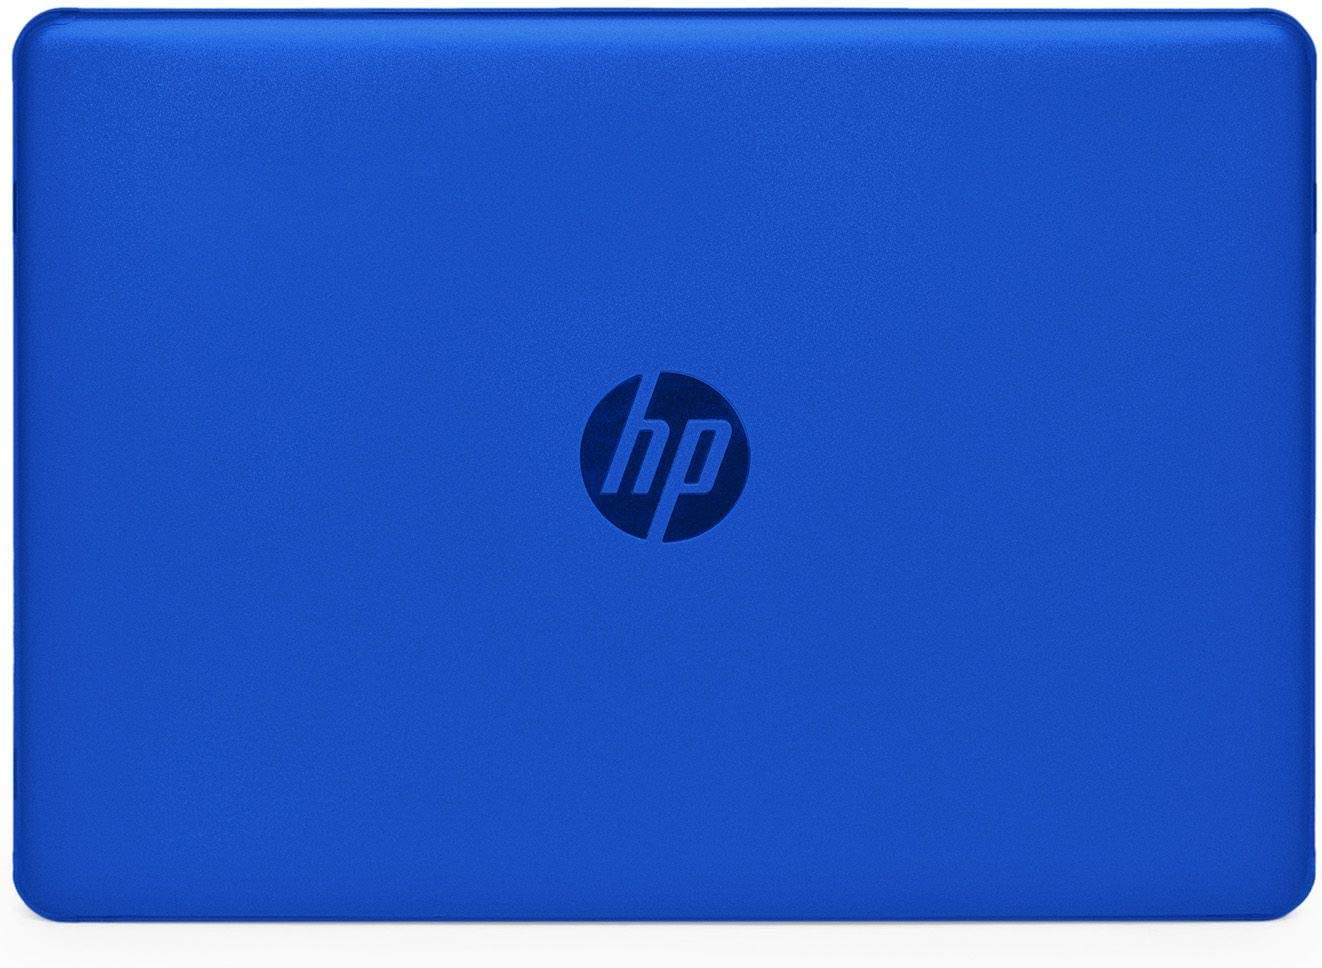 "mCover Hard Shell Case for 2020 14"" HP Pavilion 14-DQxxxx Series (NOT Compatible with Other HP Pavilion Series) laptops (Blue)"